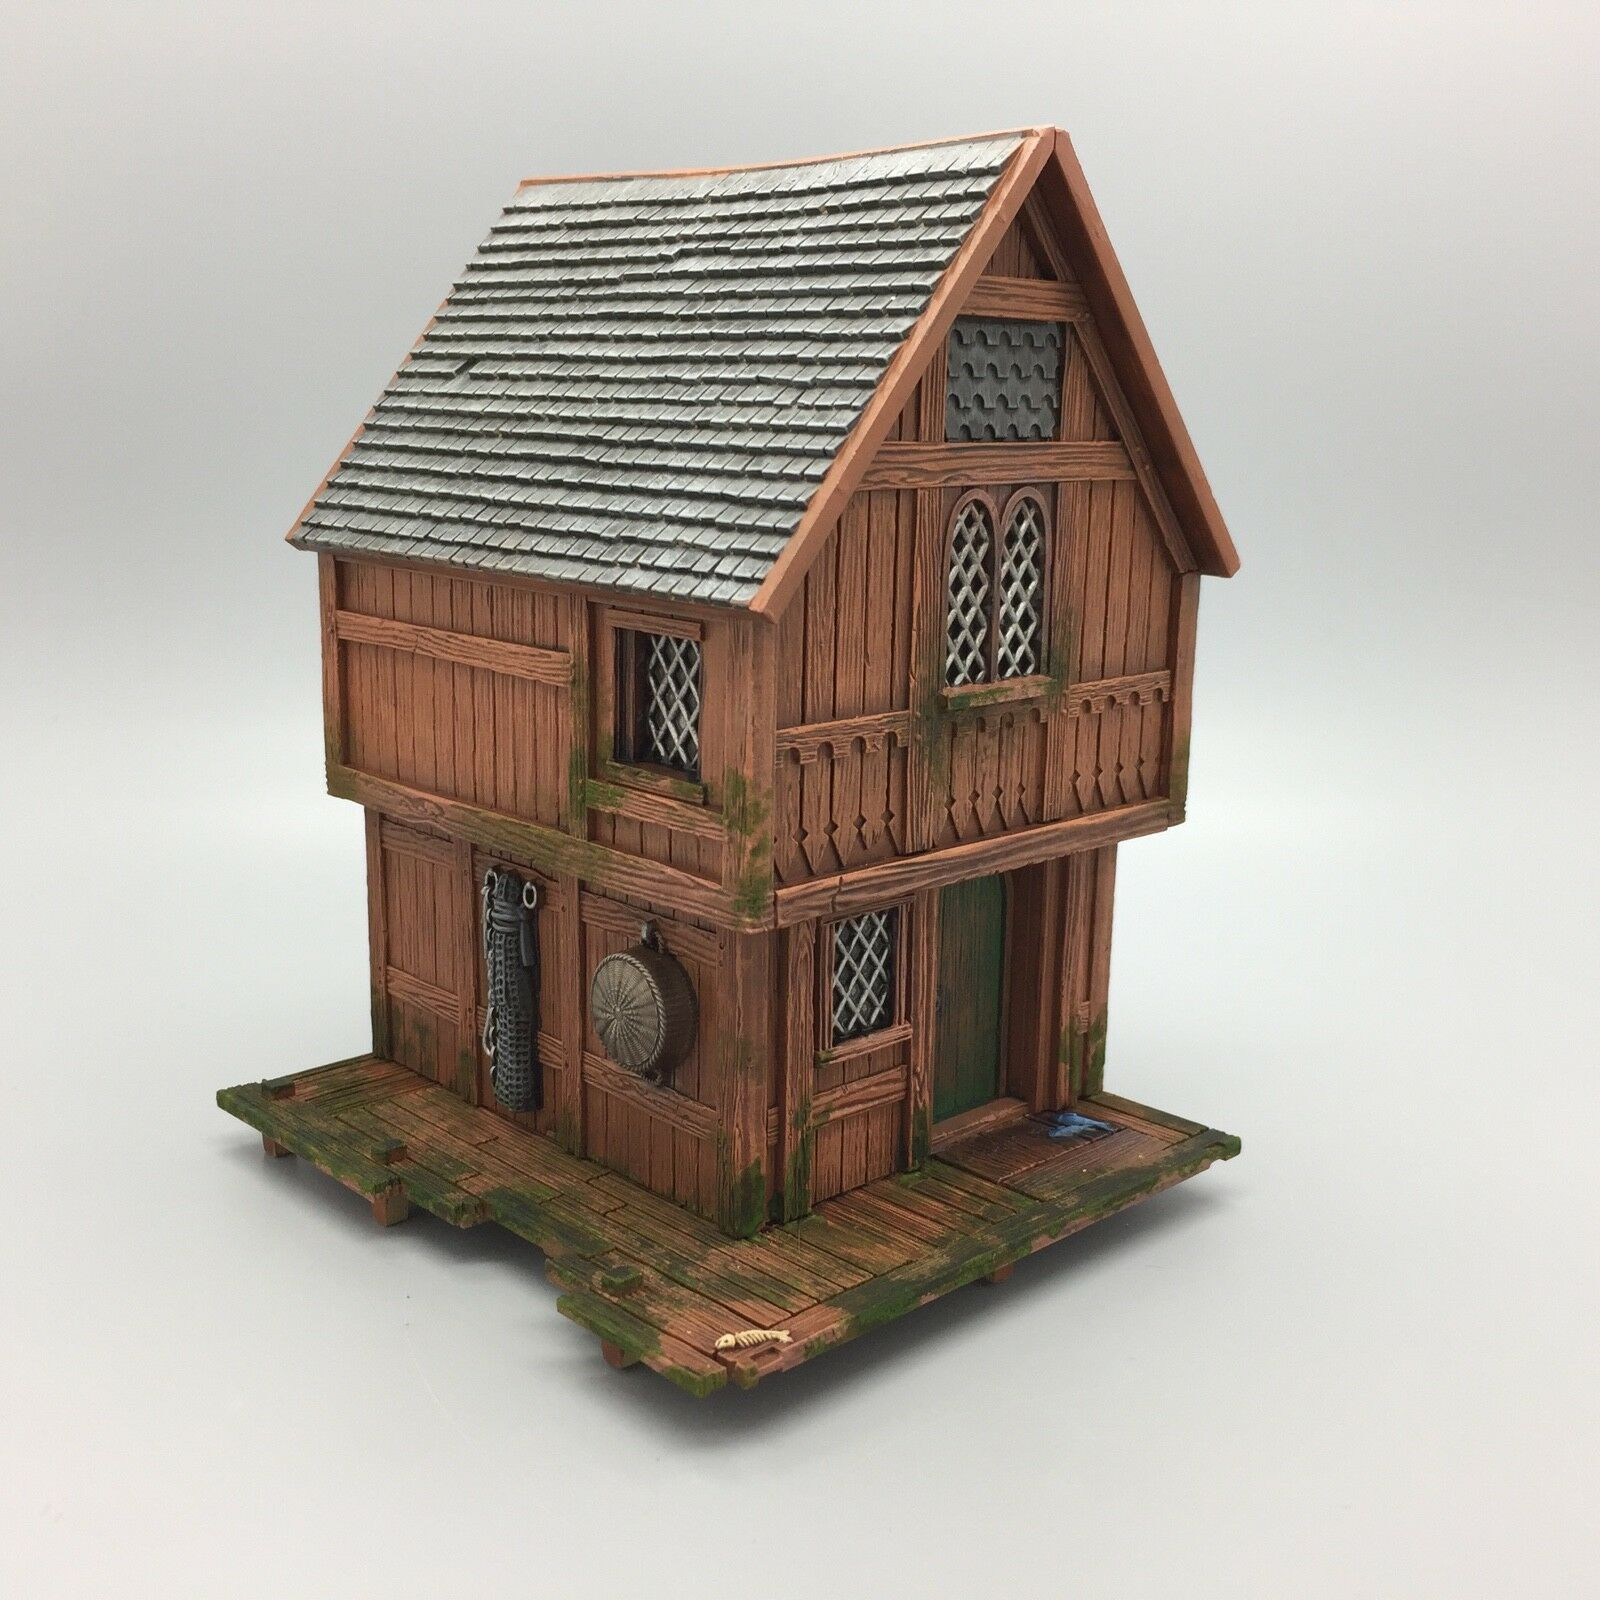 WARHAMMER LORD OF THE RINGS THE HOBBIT LAKE TOWN HOUSE HOUSE HOUSE COTTAGE TERRAIN PAINTED 3969d7